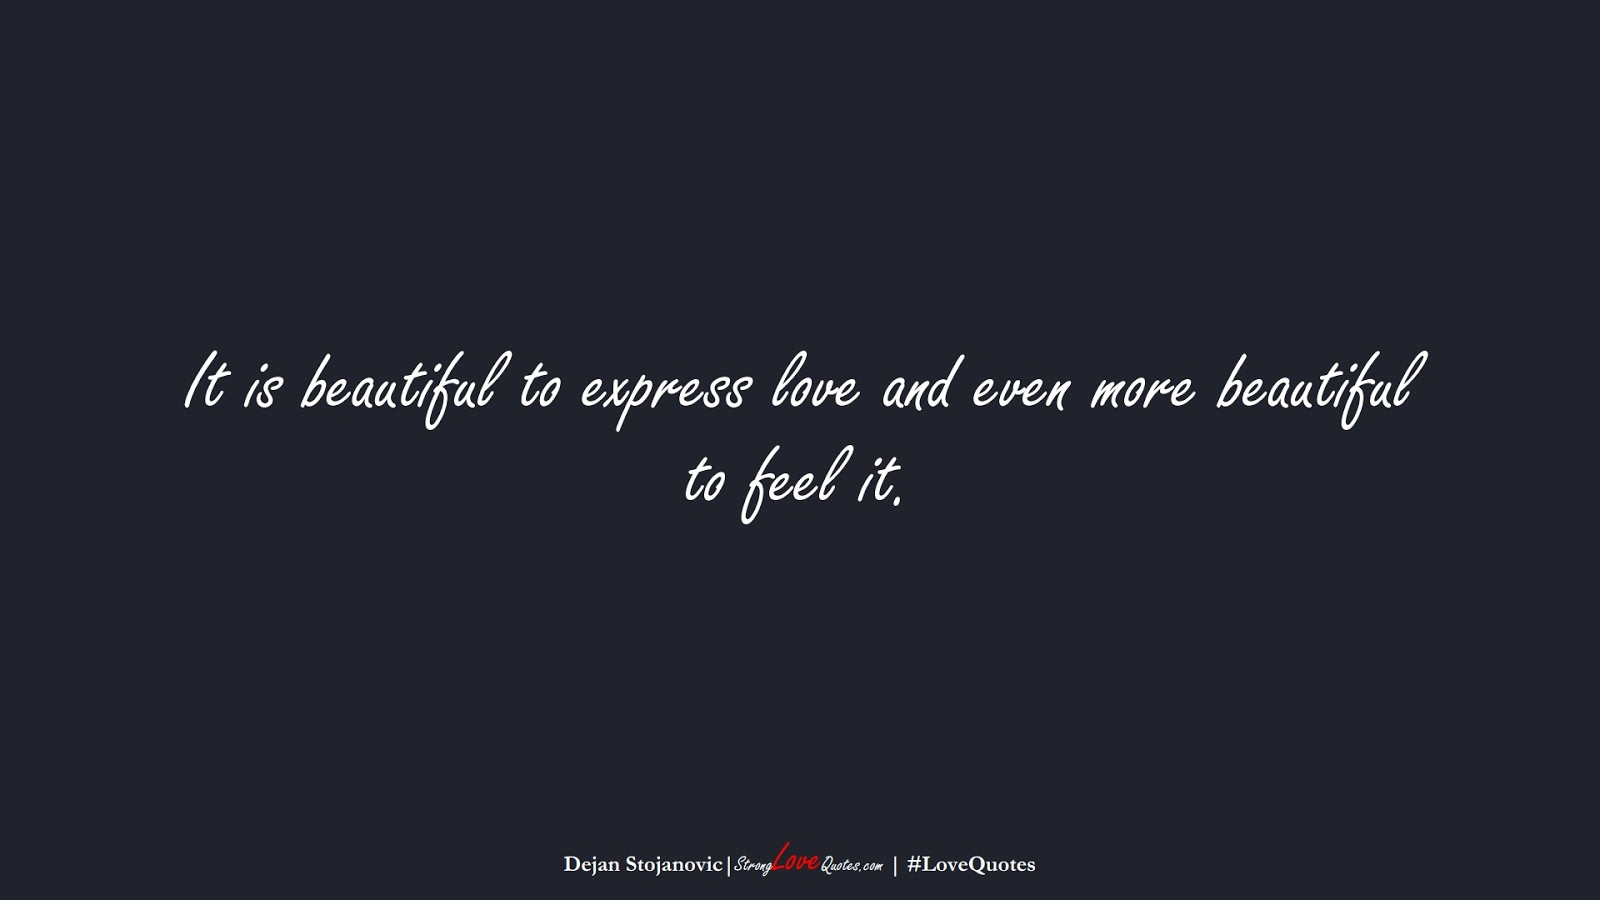 It is beautiful to express love and even more beautiful to feel it. (Dejan Stojanovic);  #LoveQuotes